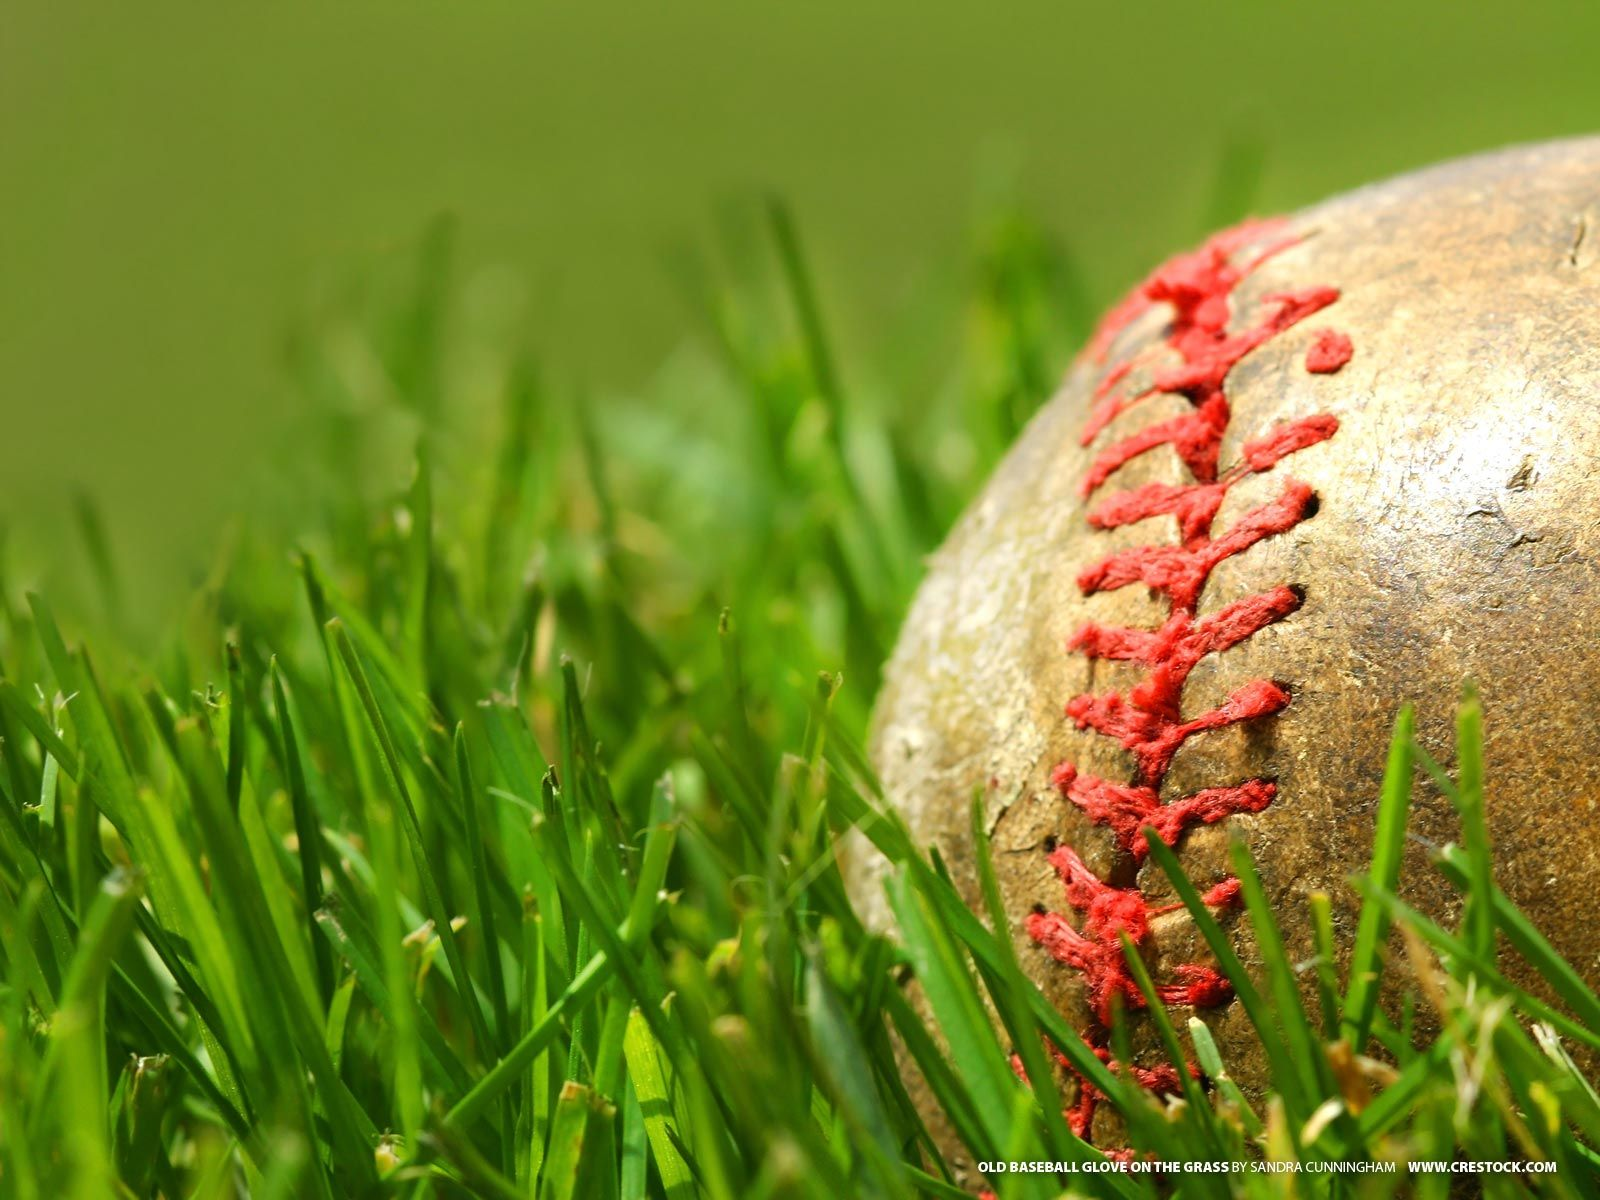 cool free hd baseball desktop wallpapers images and backgrounds